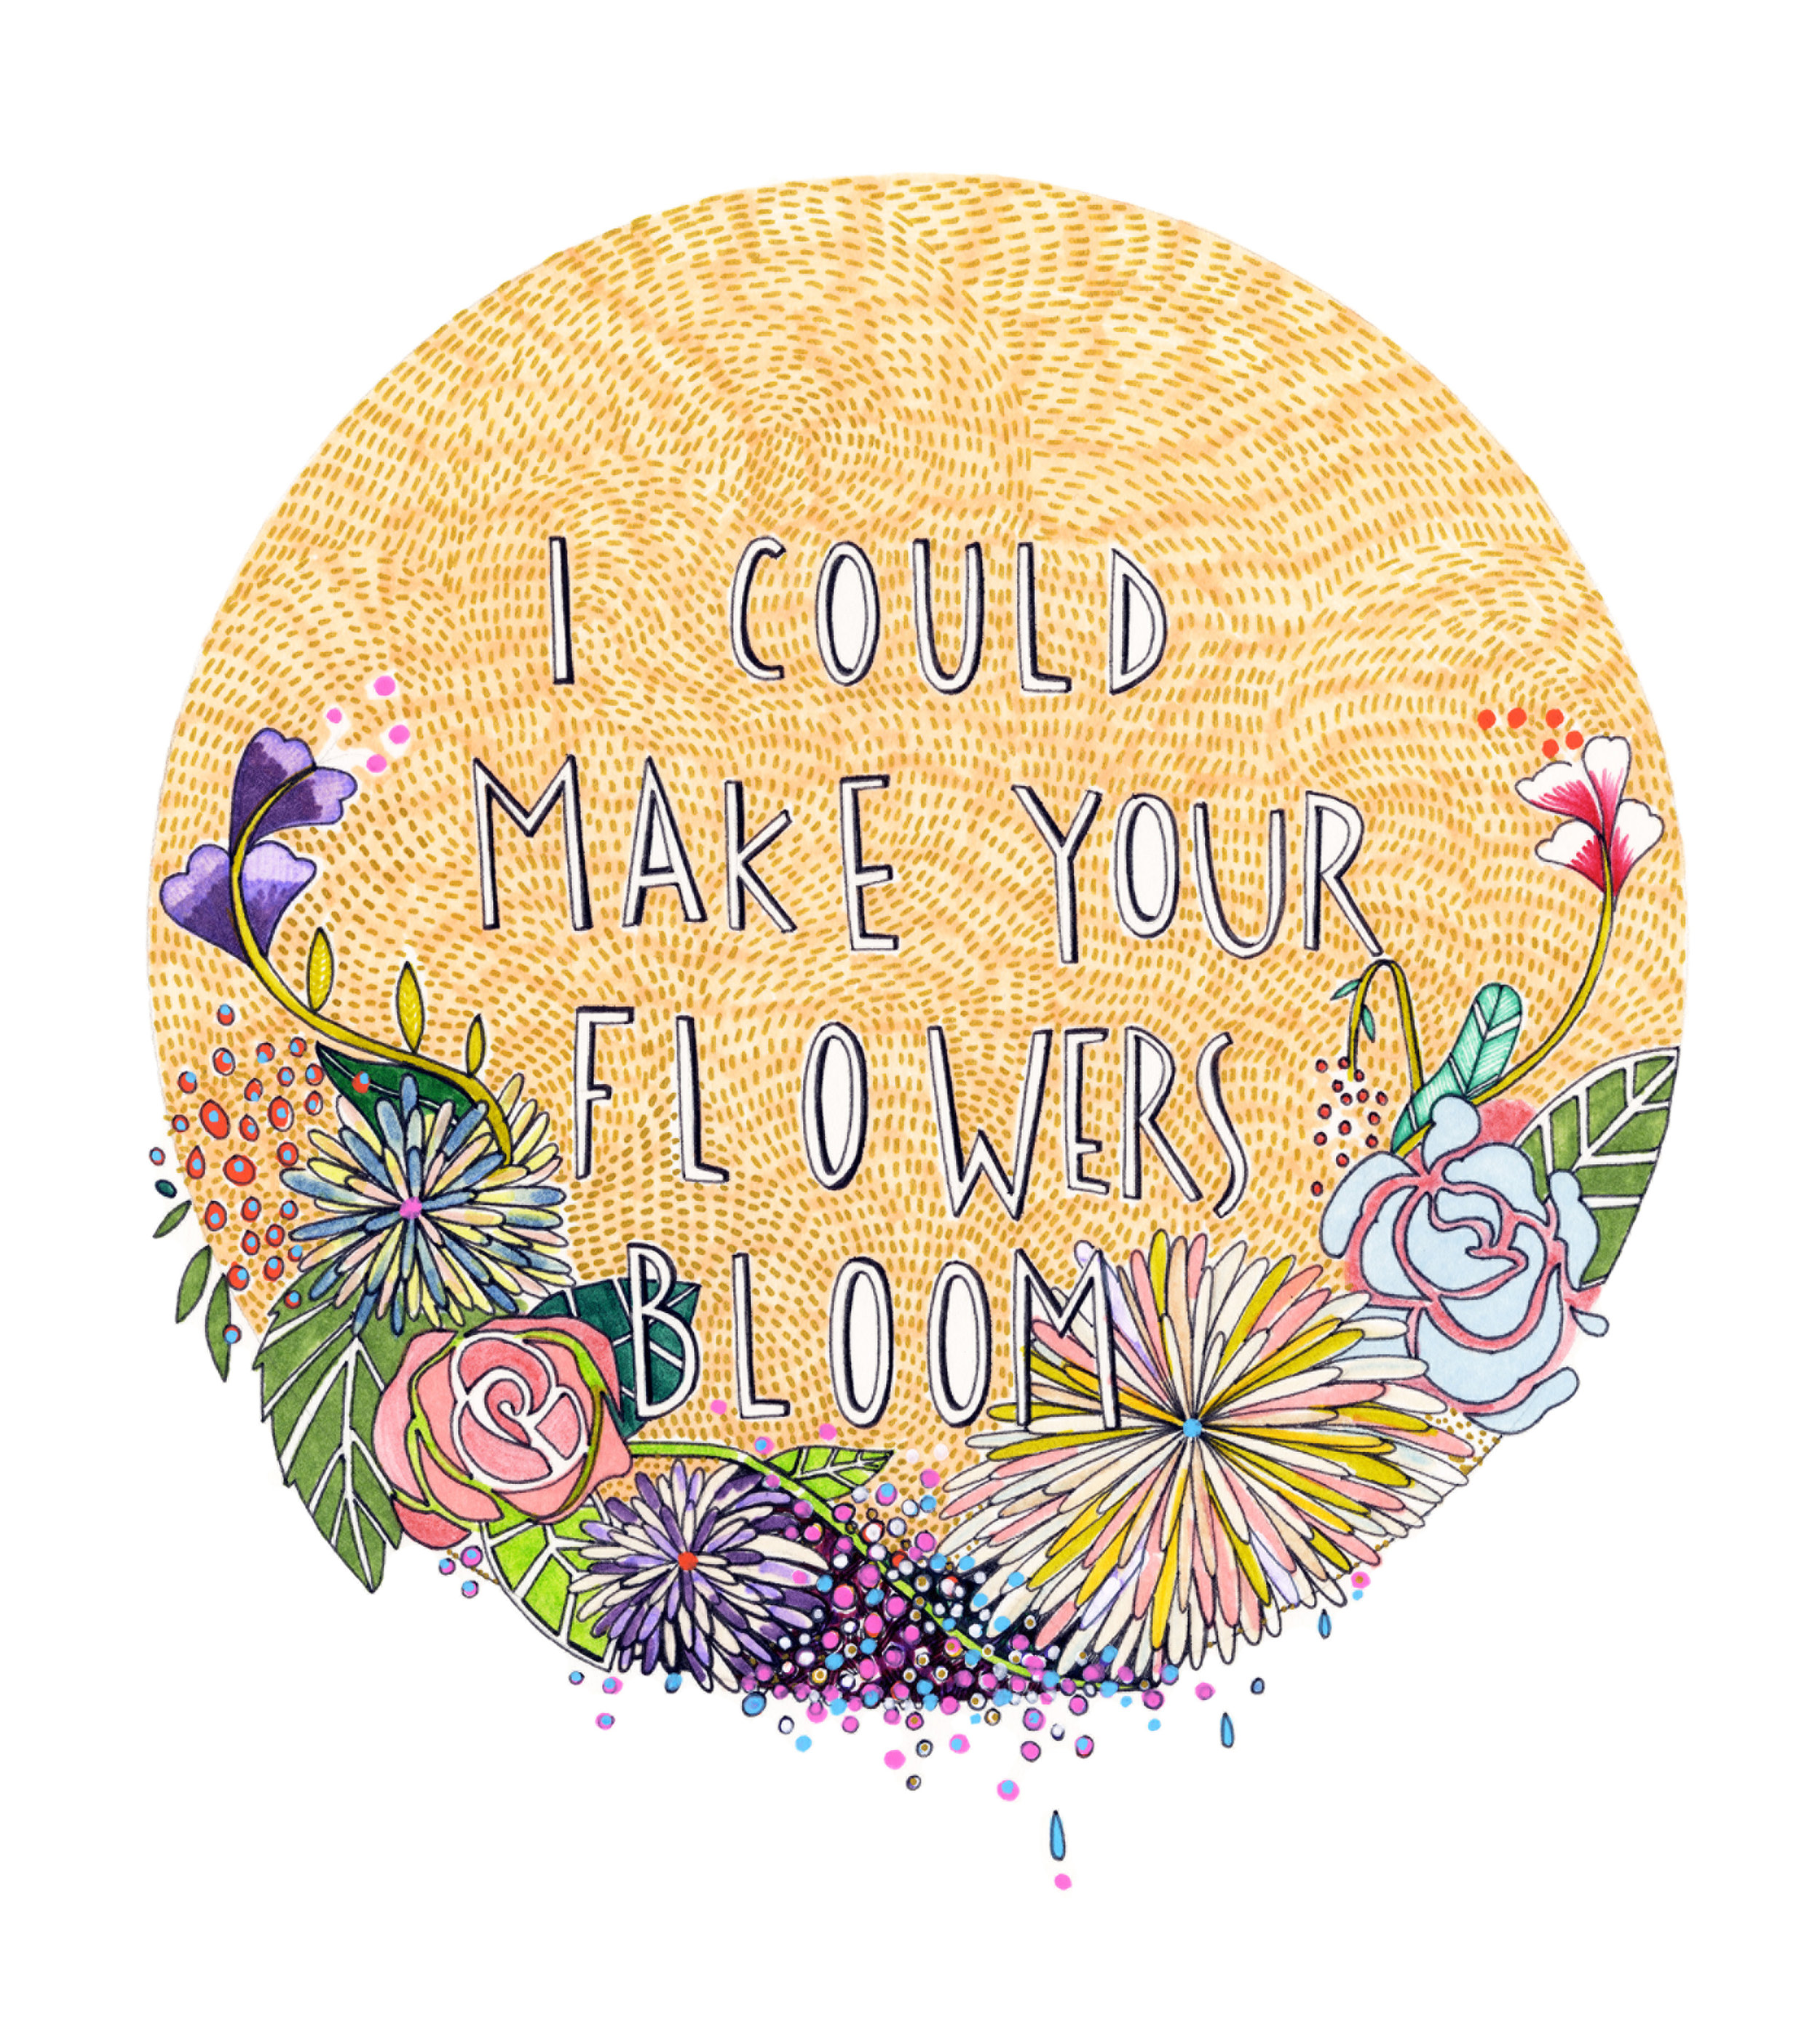 I Could Make Your Flowers Bloom